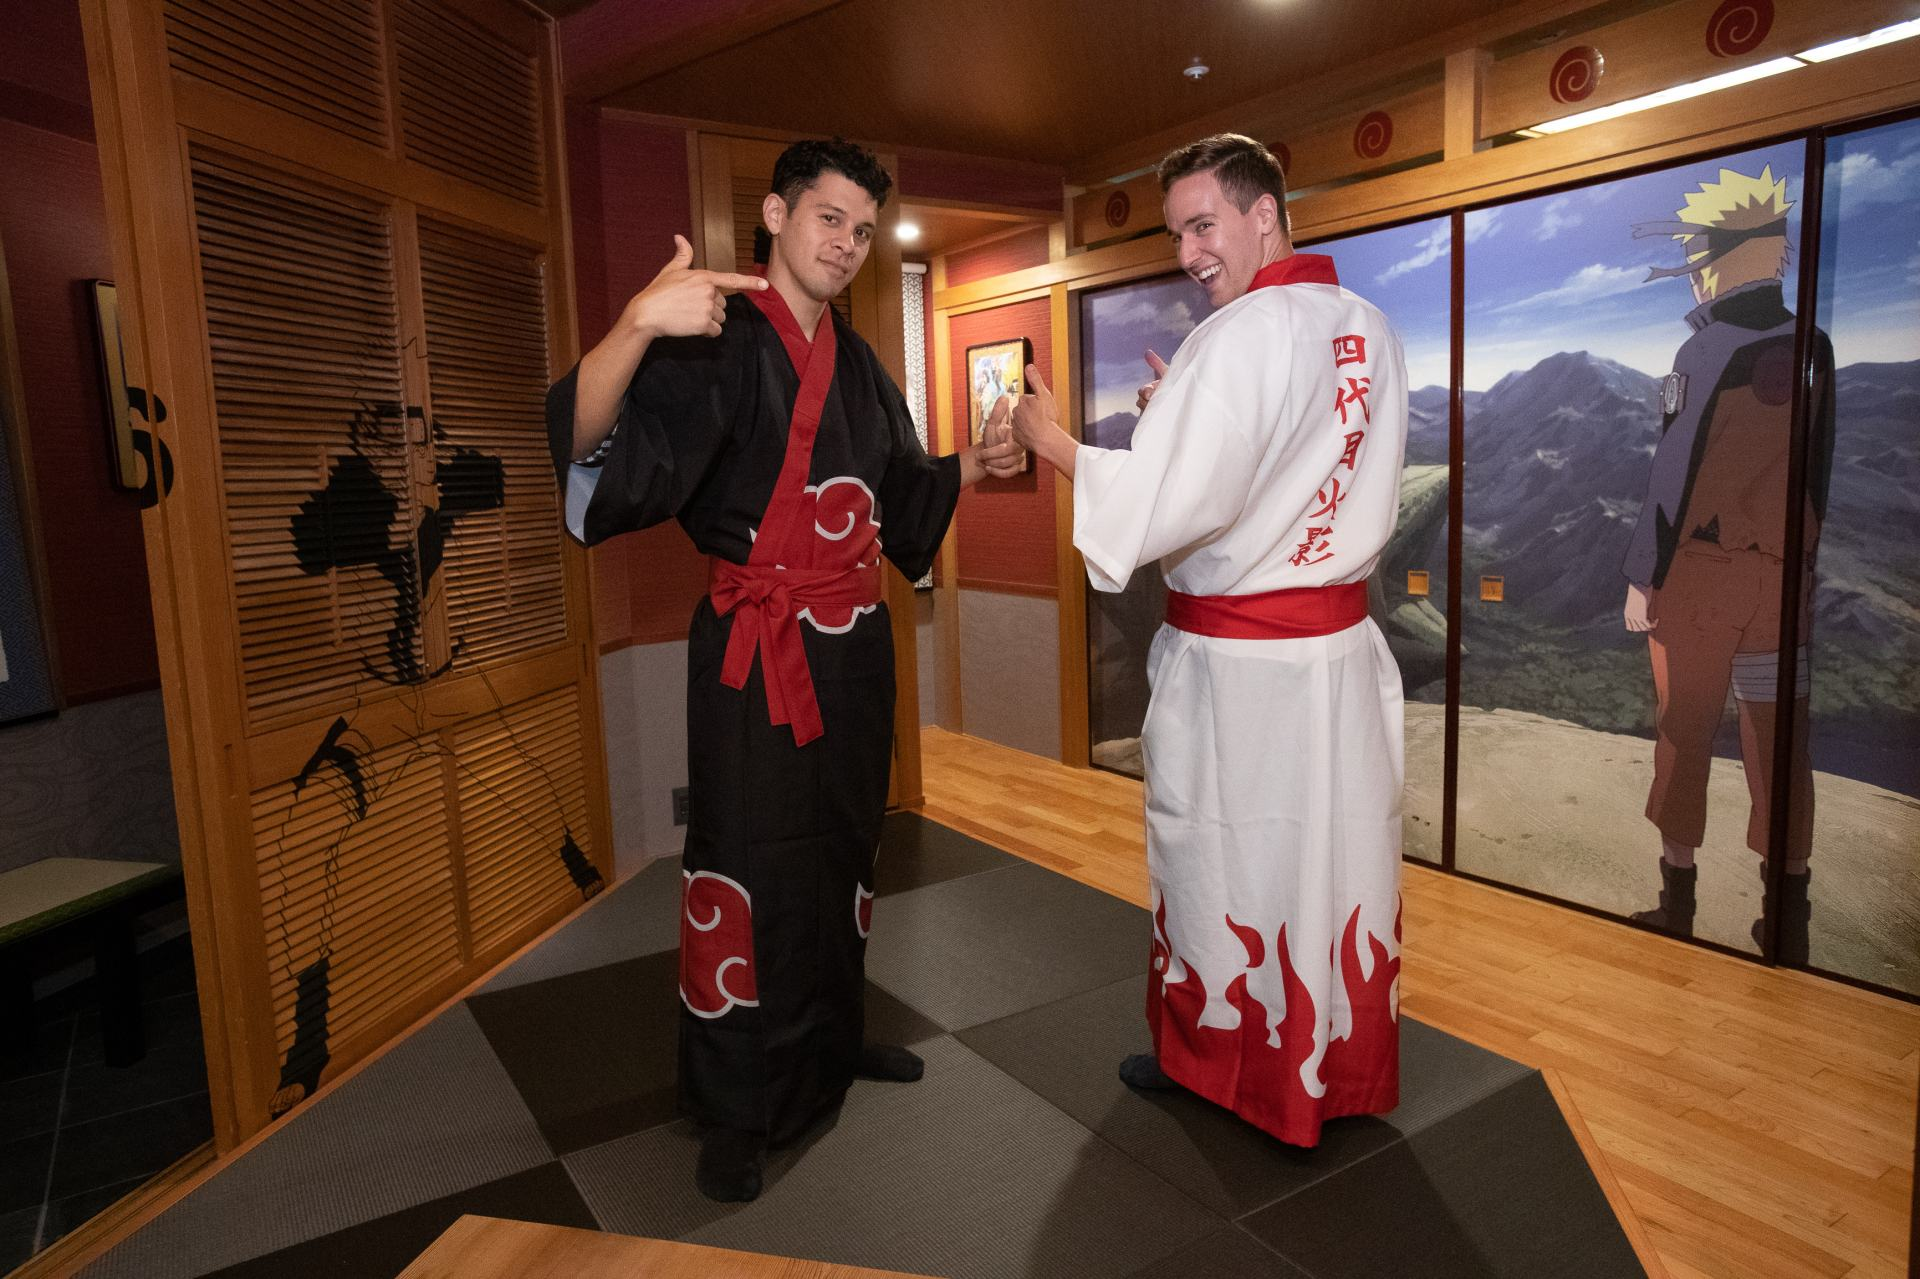 Wear one of the signature yukata robes and maybe you'll meet the NARUTO characters while you sleep!